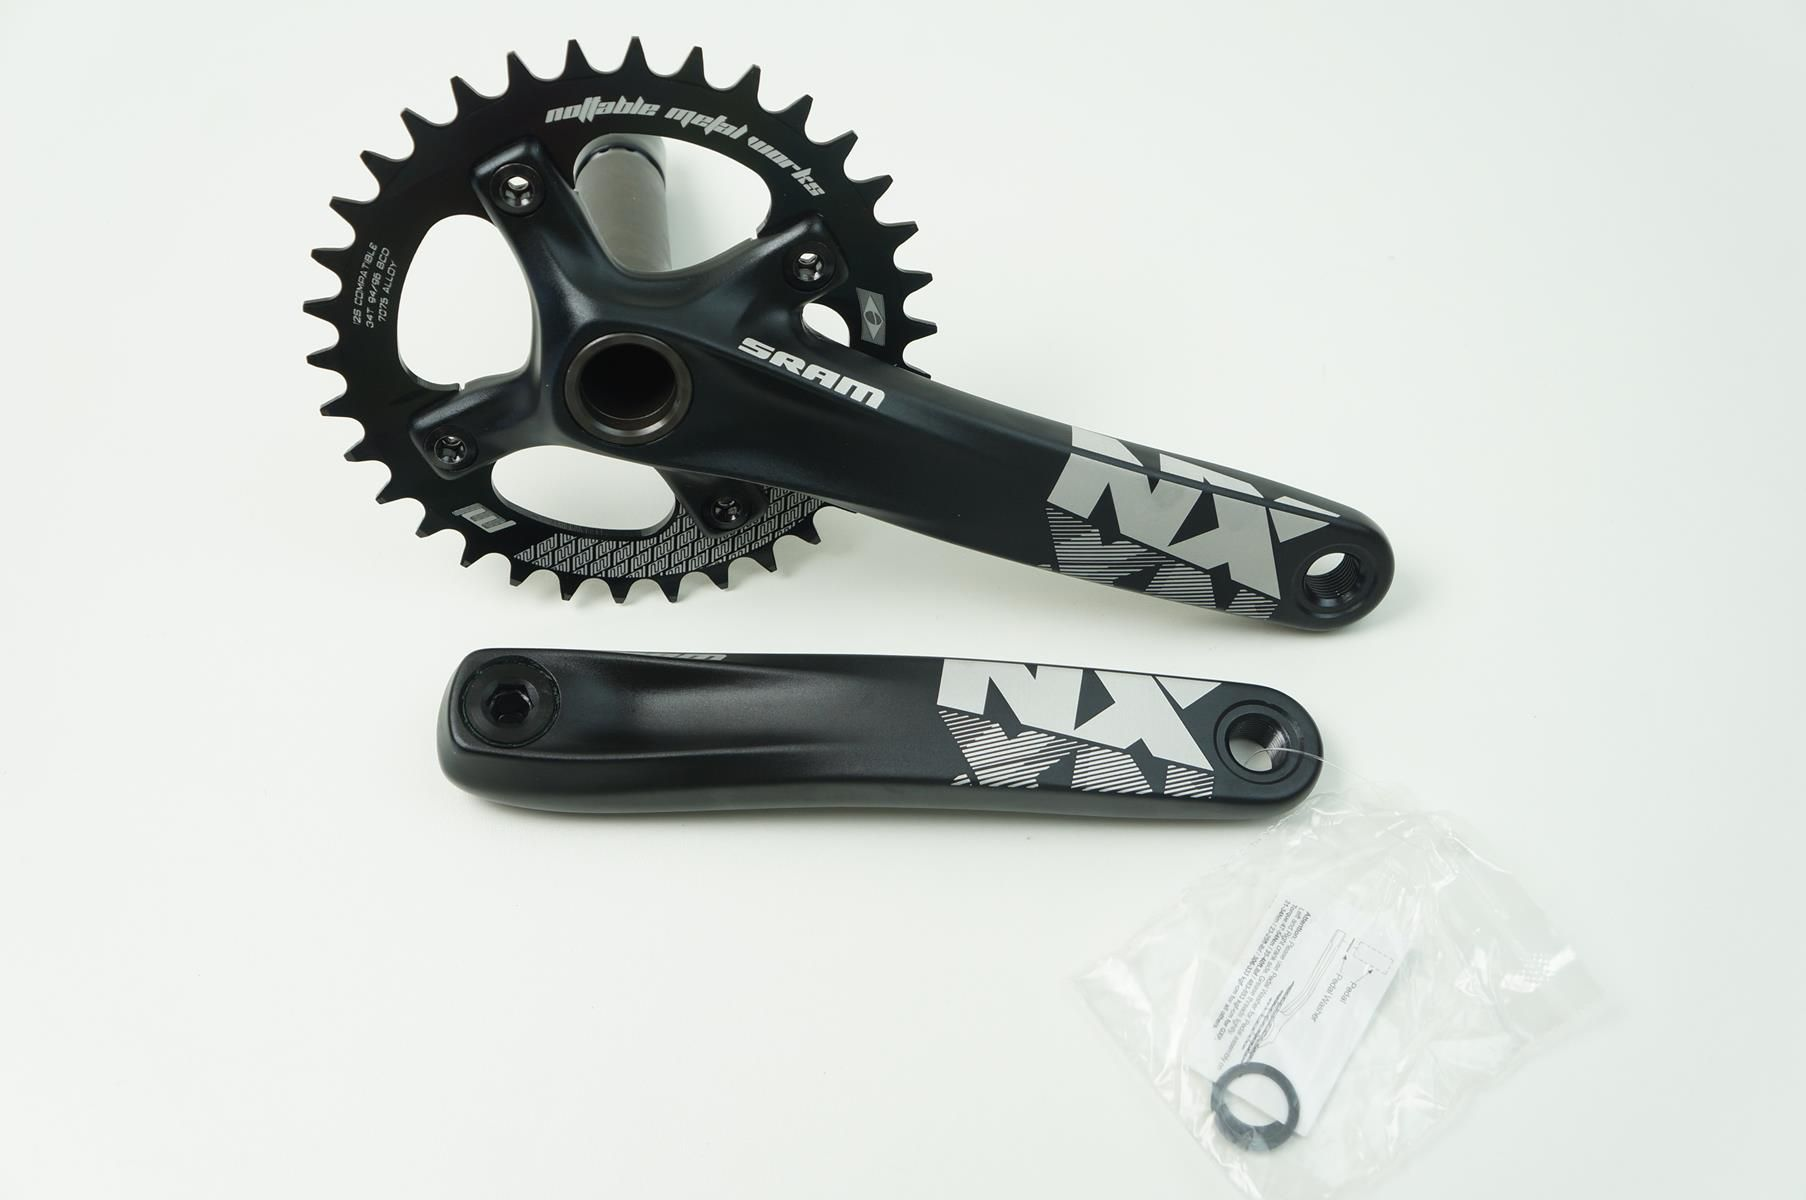 Pedivela Sram Mtb NX 1x11 GXP 175mm Coroa Nottable 32 dentes BCD 94mm